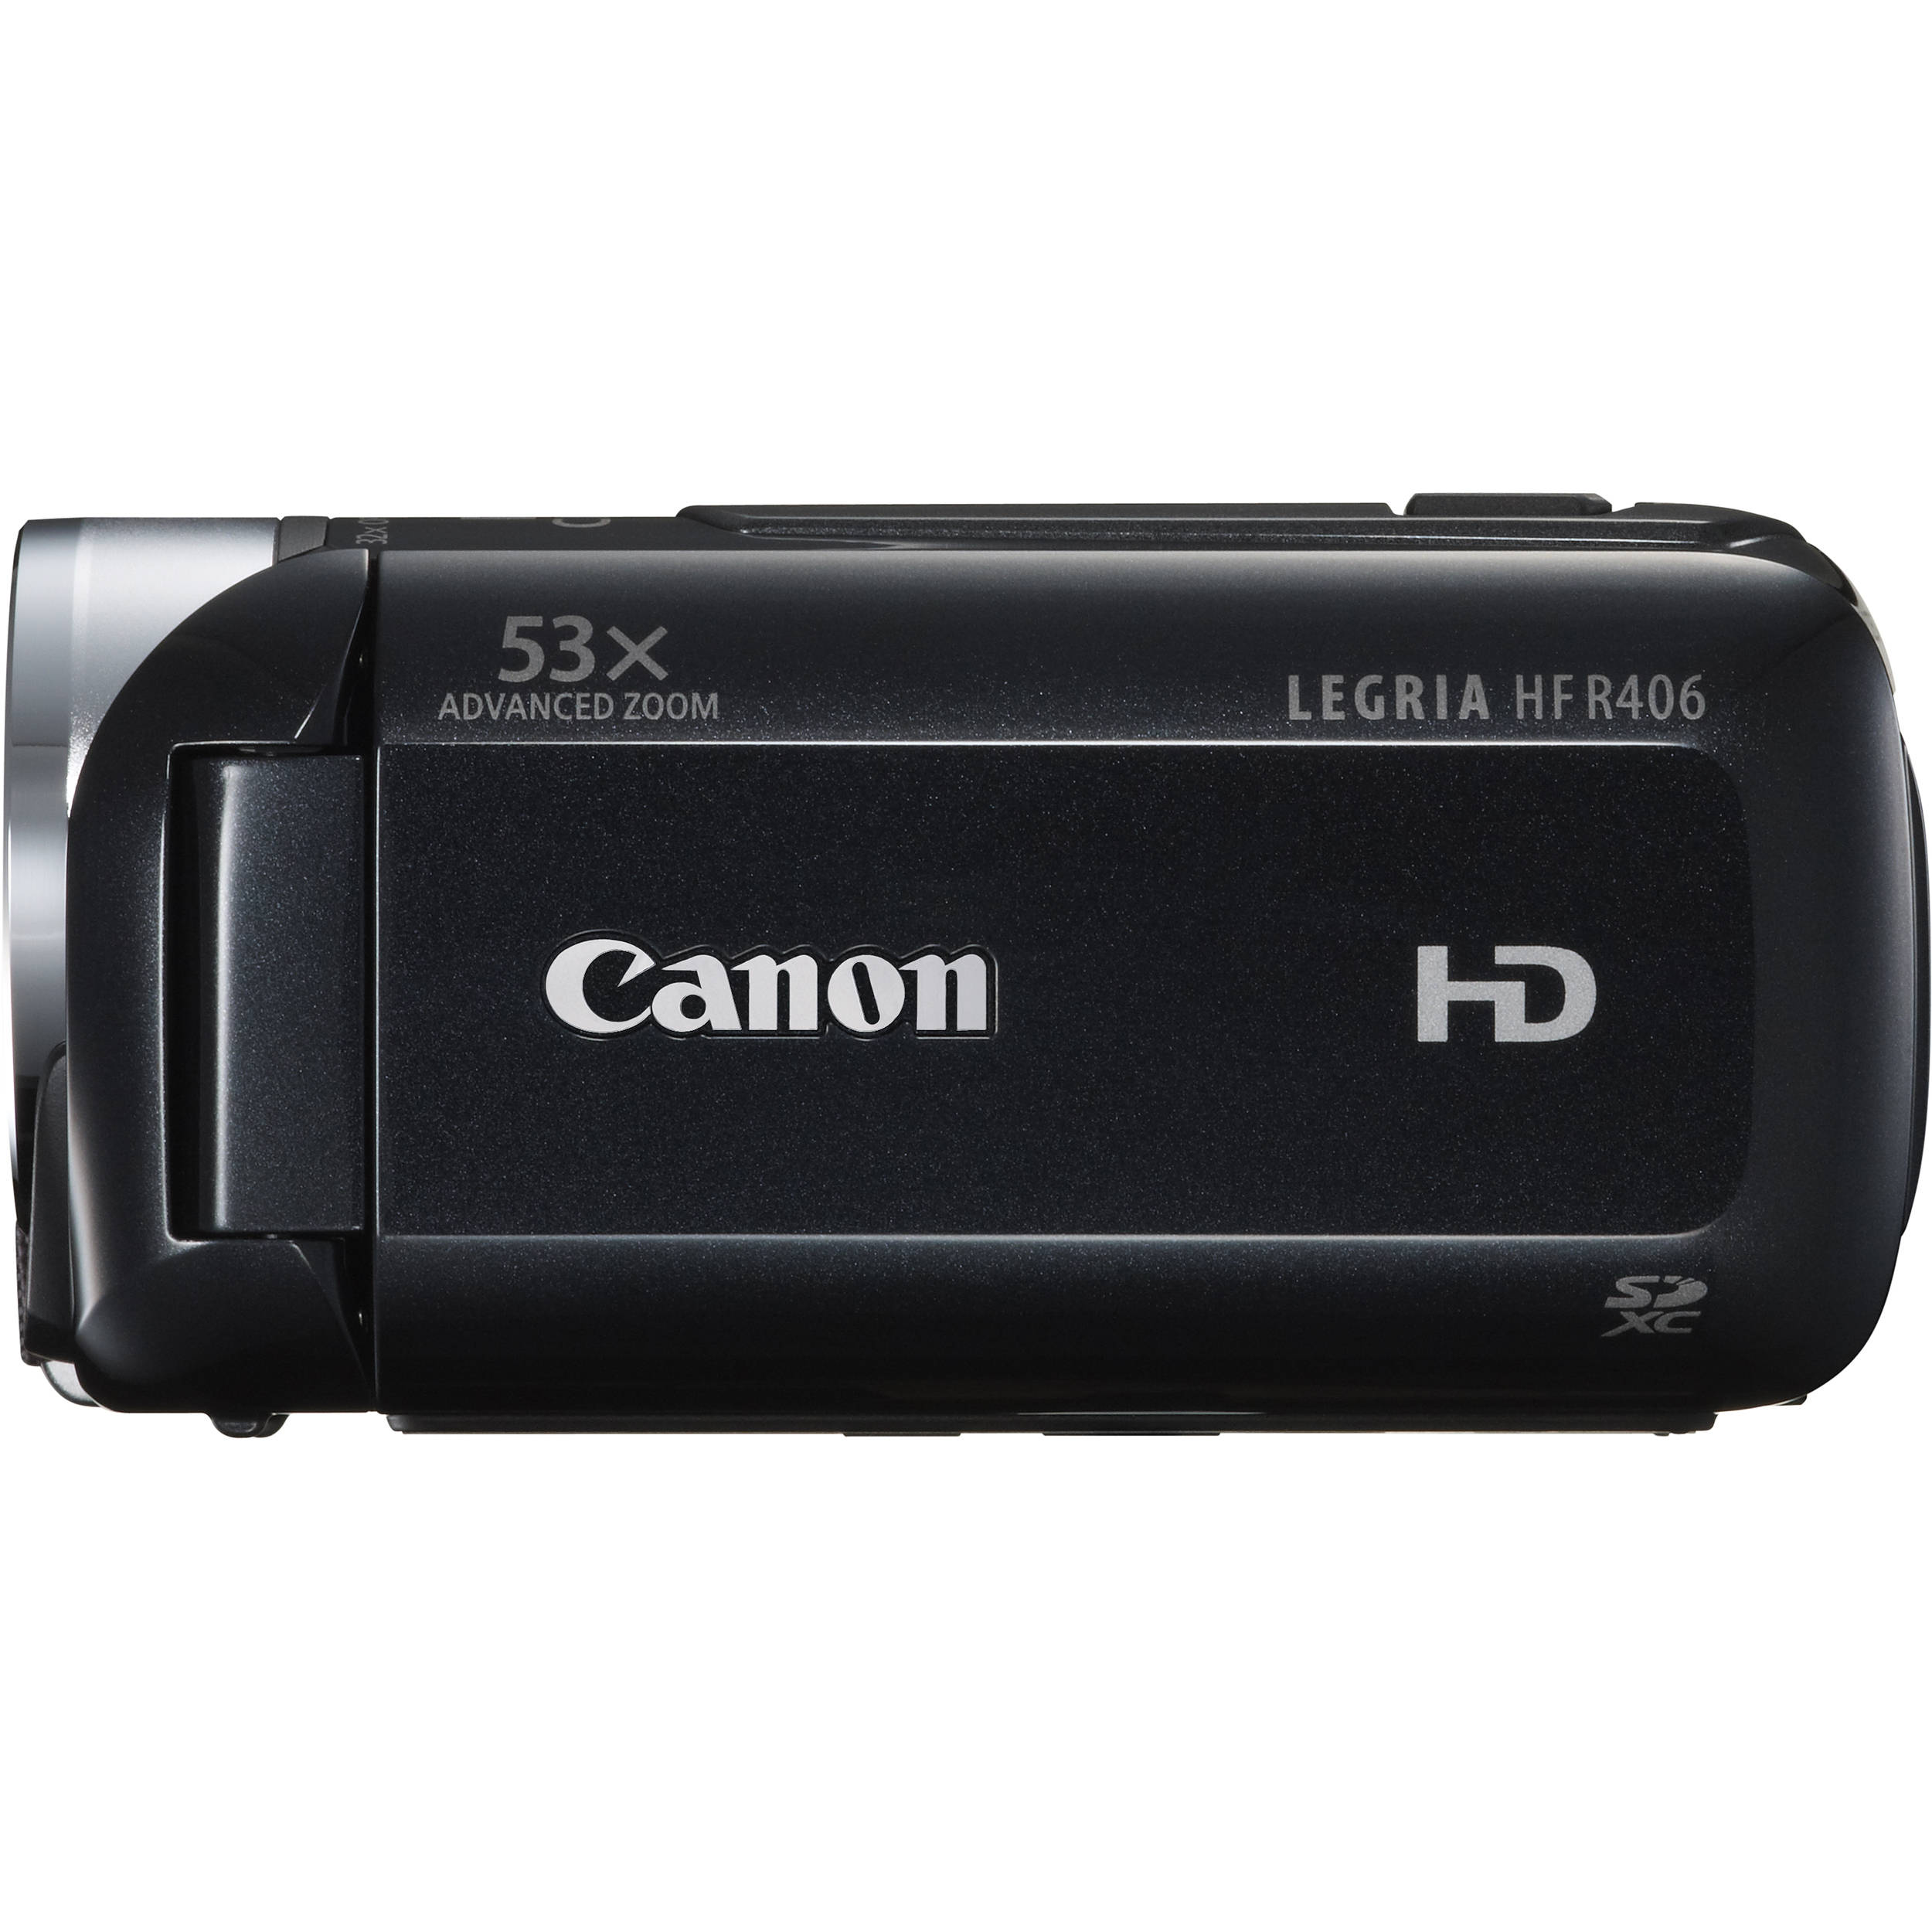 SDHC Memory Cards Canon HF R11 Camcorder Memory Card 2 x 32GB Secure Digital High Capacity 2 Pack